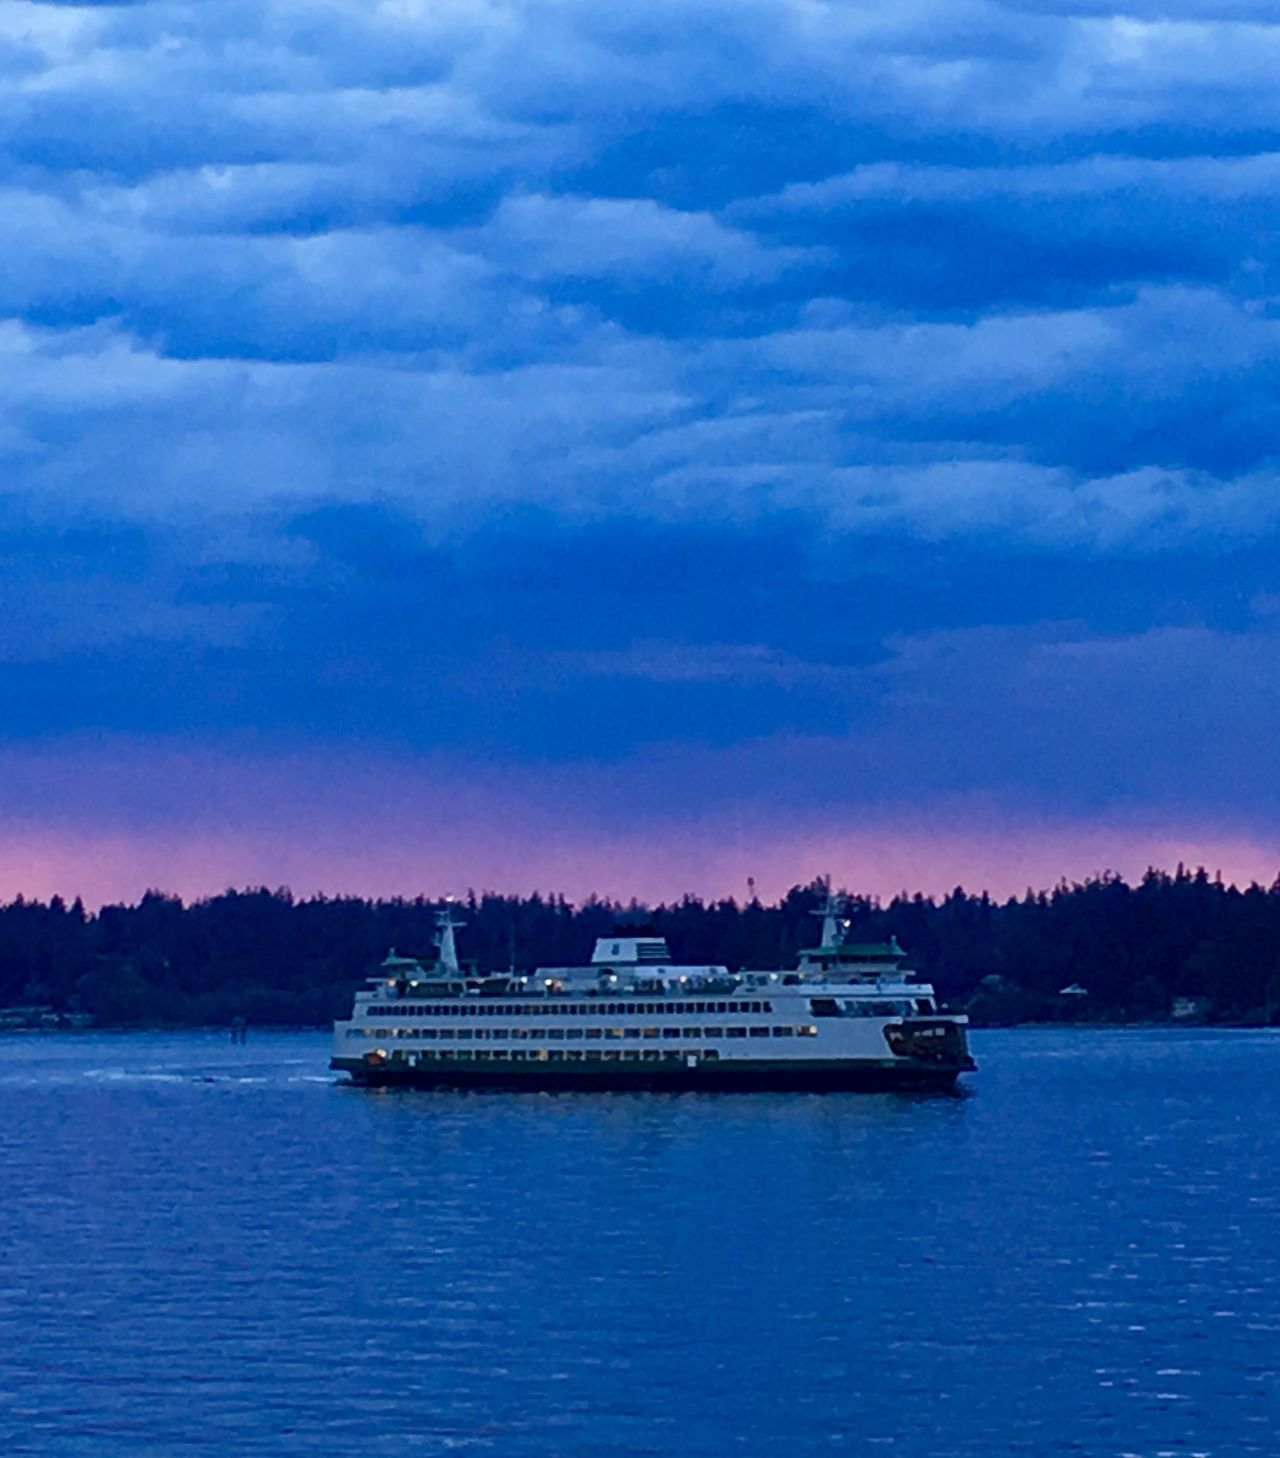 Ferry Bainbridge Island Ferry Puget Sound Crossing Visit In May Late Ride To  Seattle Visiting Work Business Trip EyeEm Best Shots EyeEmBestPics Blue Water Sky Blue Water Blue Sky Pictureoftheday IPhone Amateurphotography